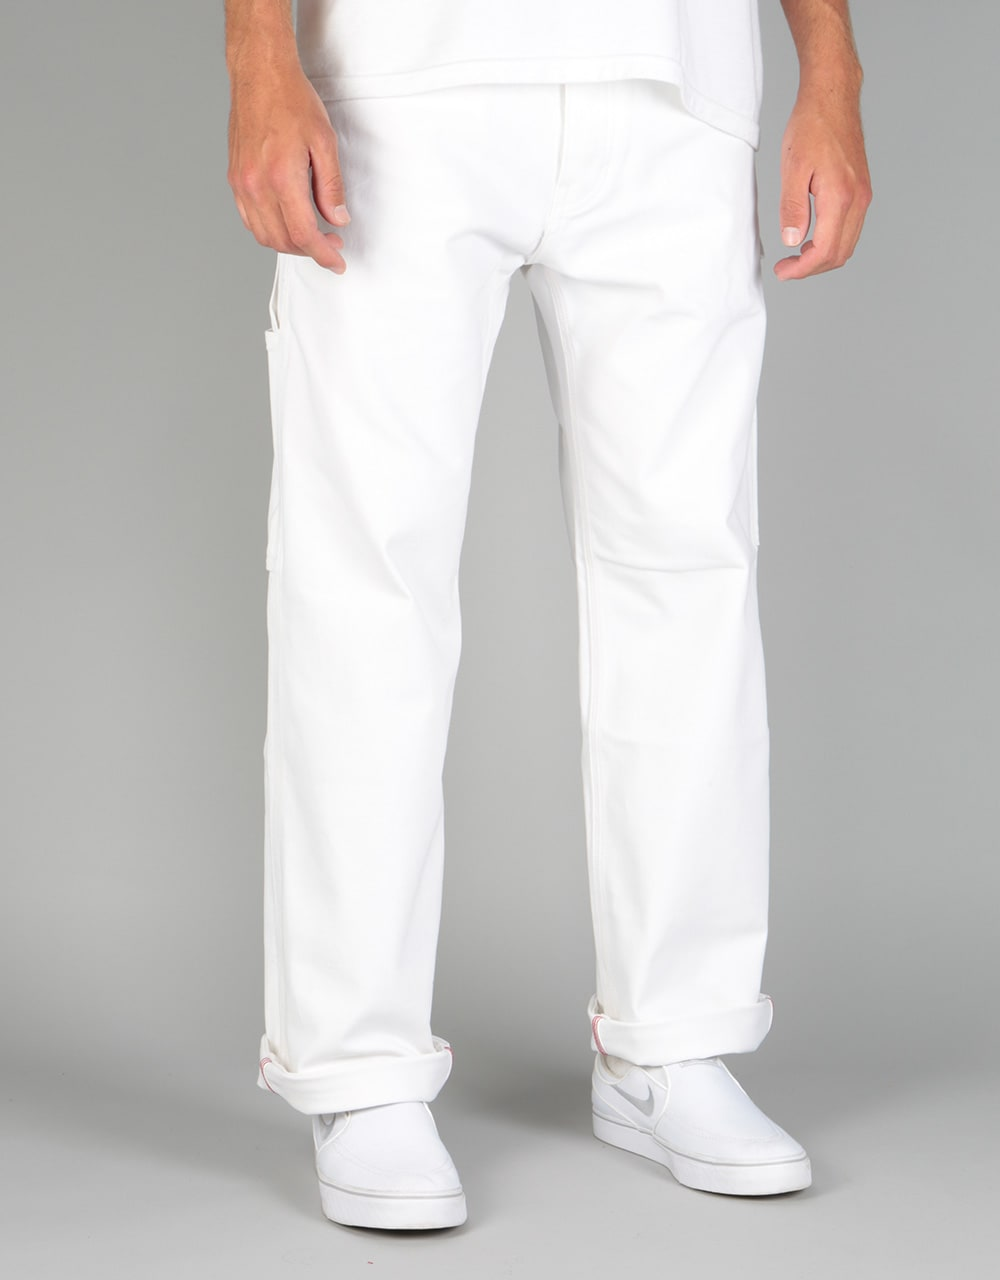 White Denim Jeans Mens